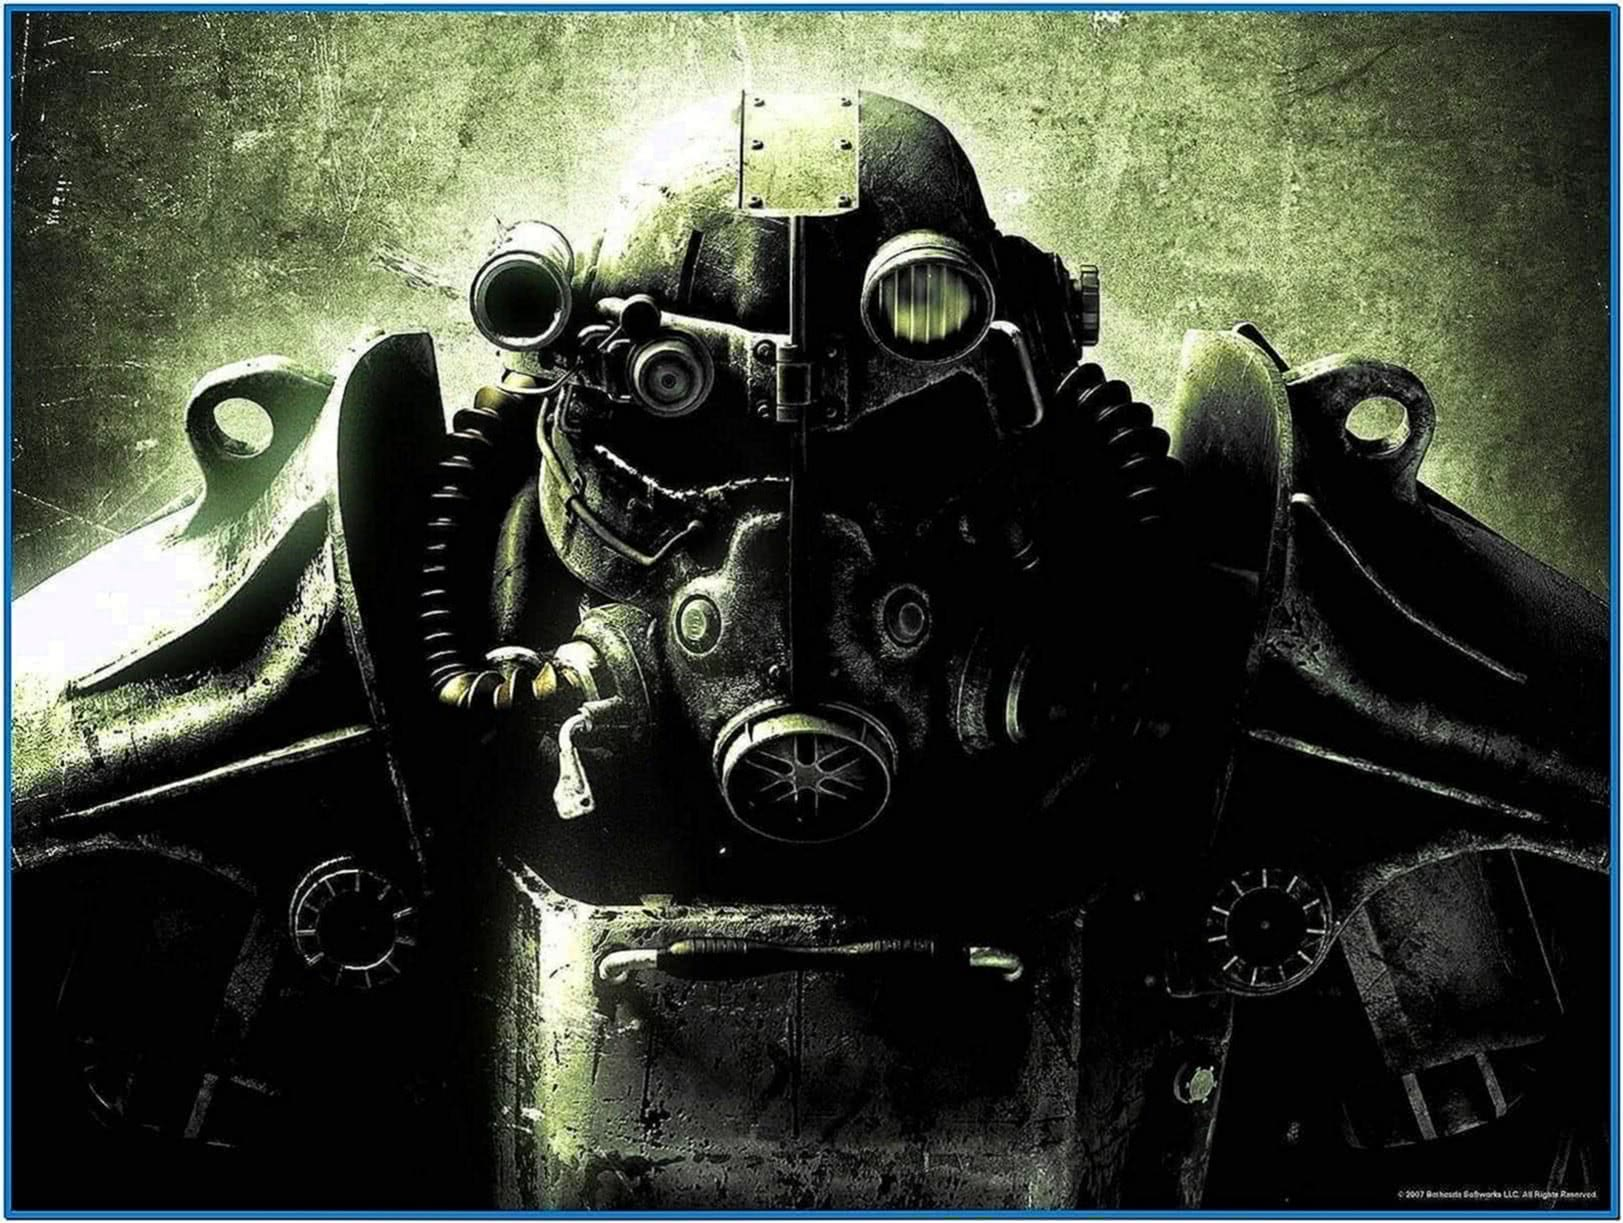 Fallout 3 Screensaver